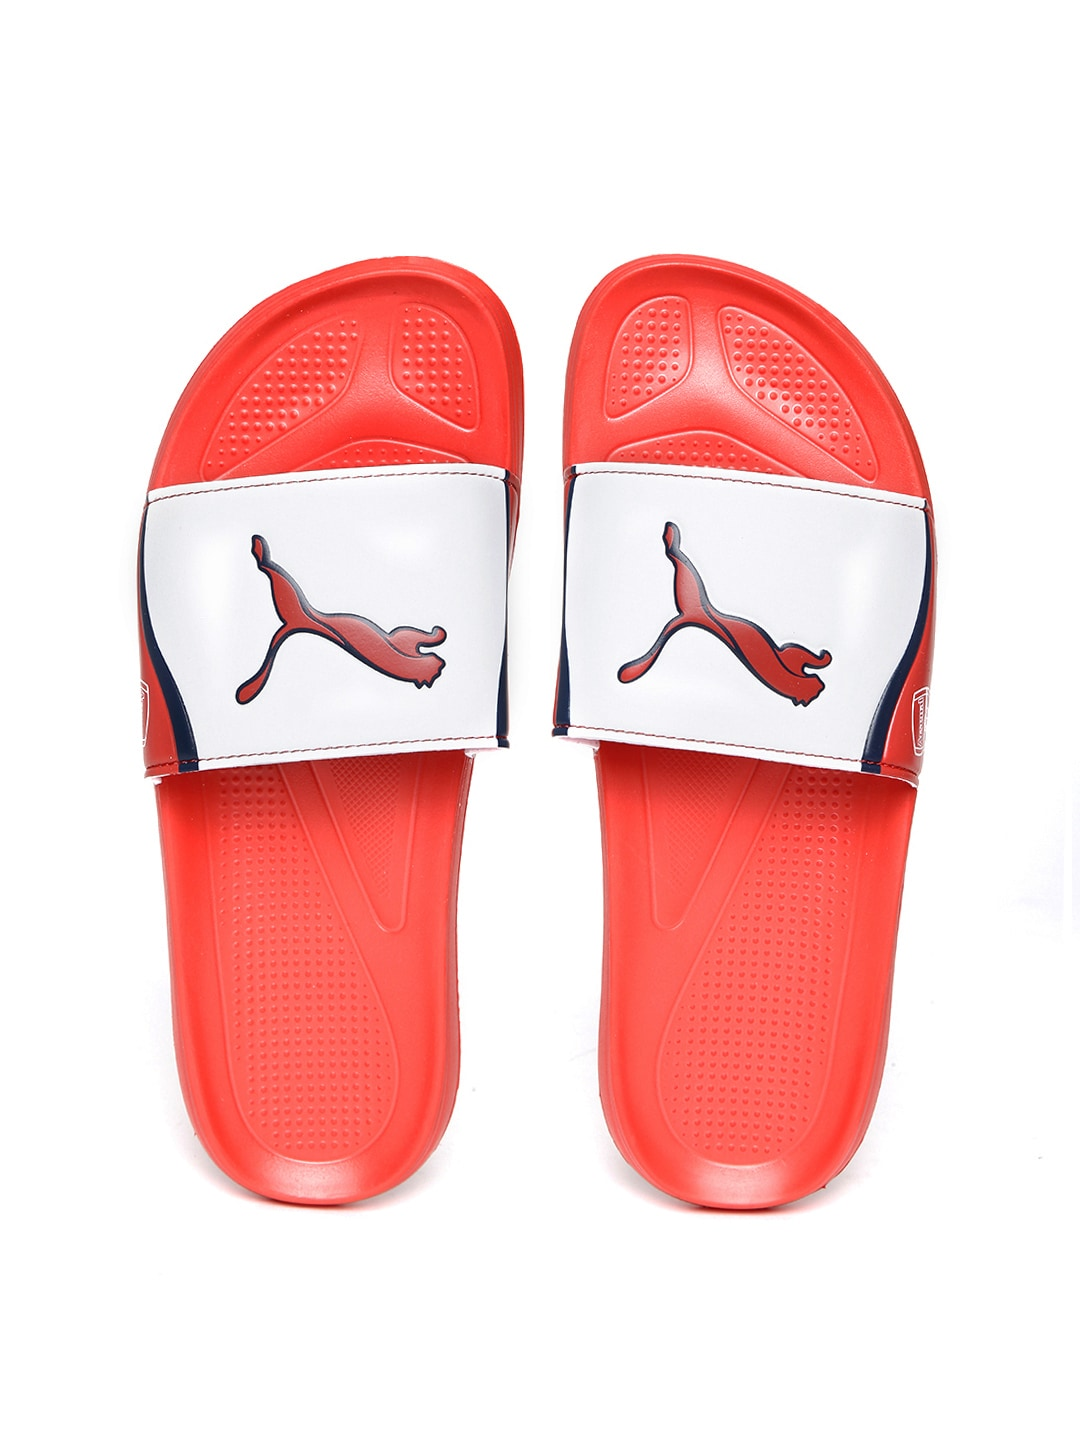 9e172d4d1d1 Puma 10345501 Arsenal By Men Red And White Colour Block Afc Team Cat Flip  Flops- Price in India